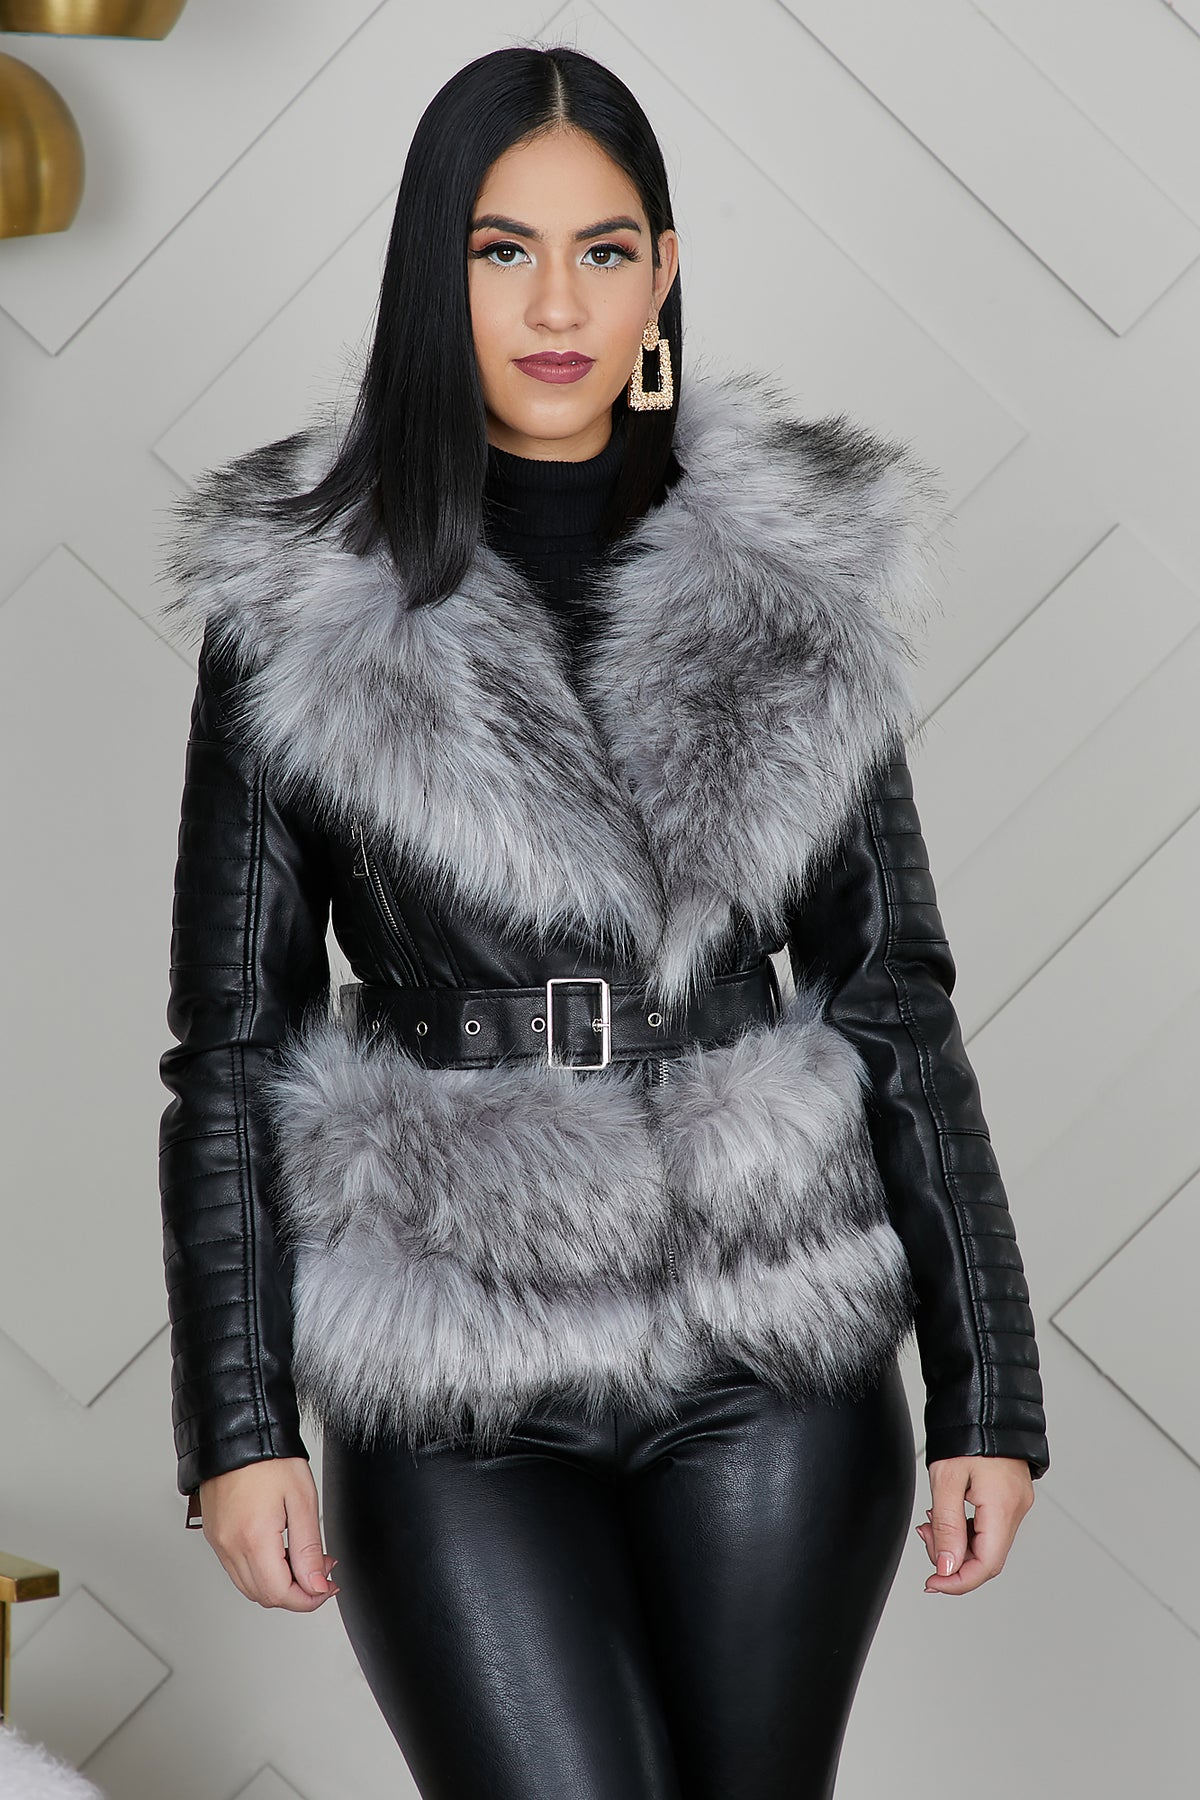 Quilted Leather Fur Jacket (Grey/Black) by Lilly's Kloset